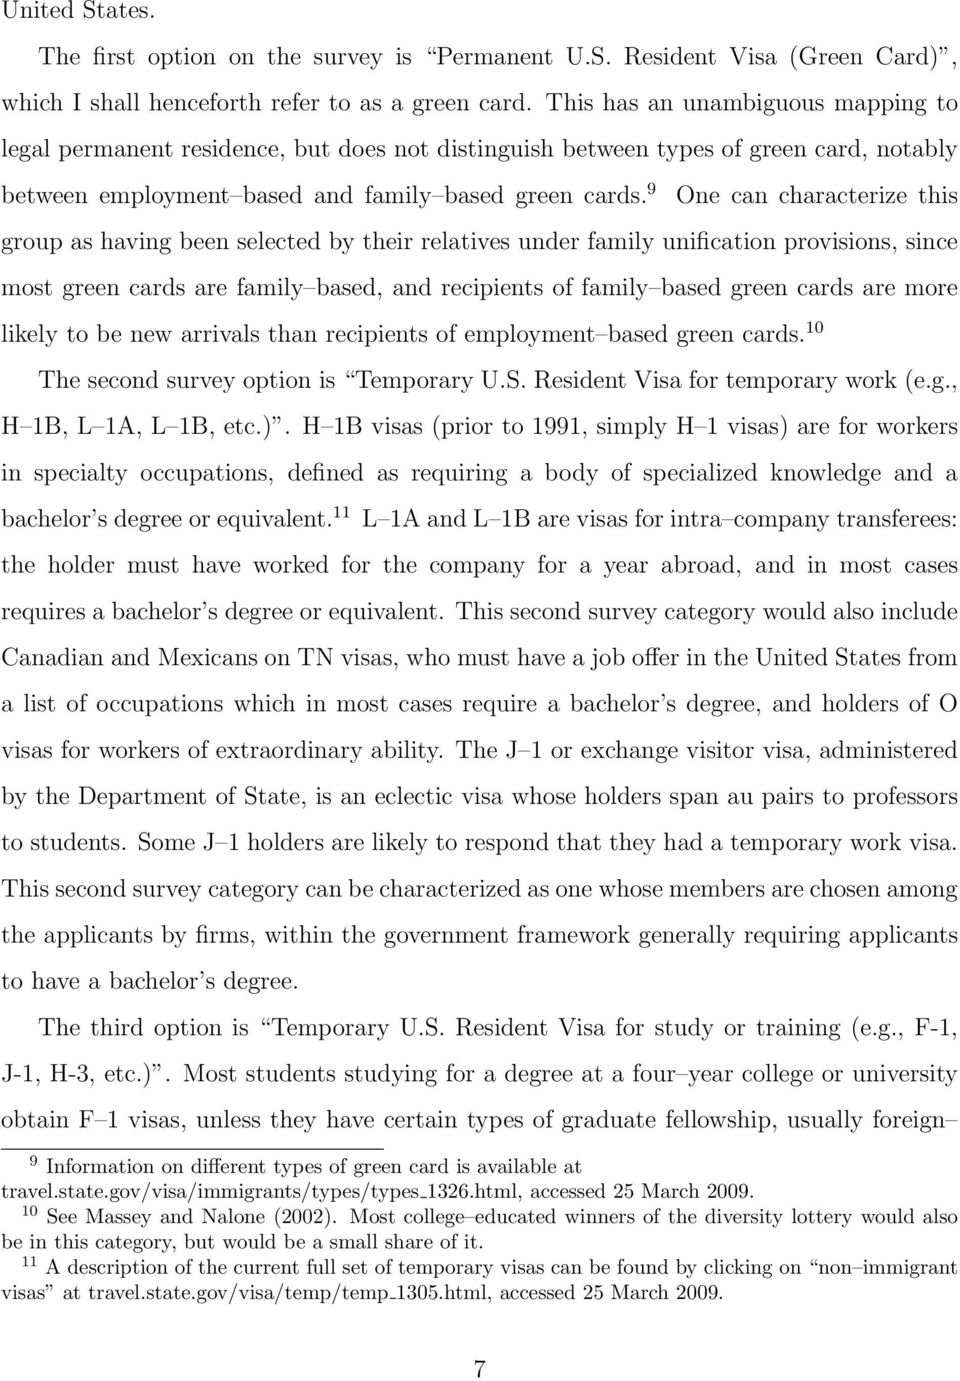 9 One can characterize this group as having been selected by their relatives under family unification provisions, since most green cards are family based, and recipients of family based green cards